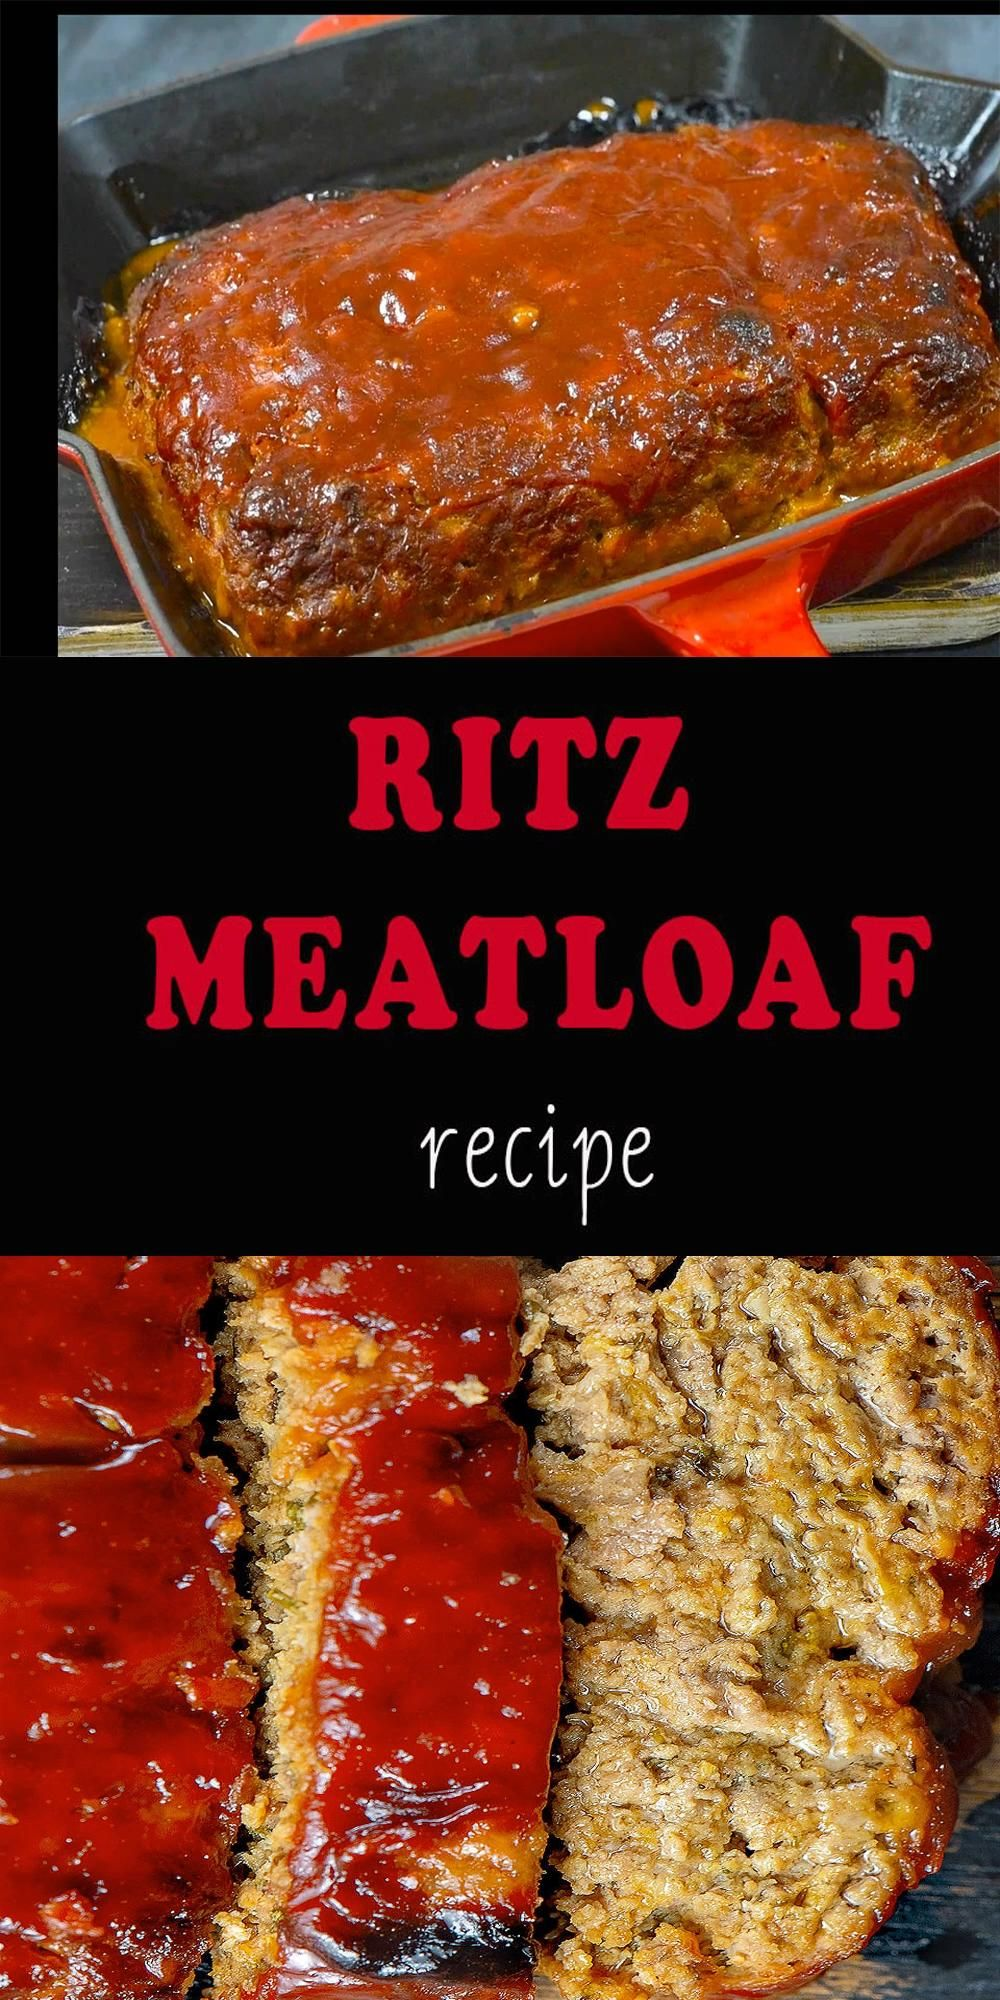 Meatloaf With Ritz Crackers Chefjar Video Recipe Video In 2021 Good Meatloaf Recipe Meatloaf Recipes Unique Meatloaf Recipes